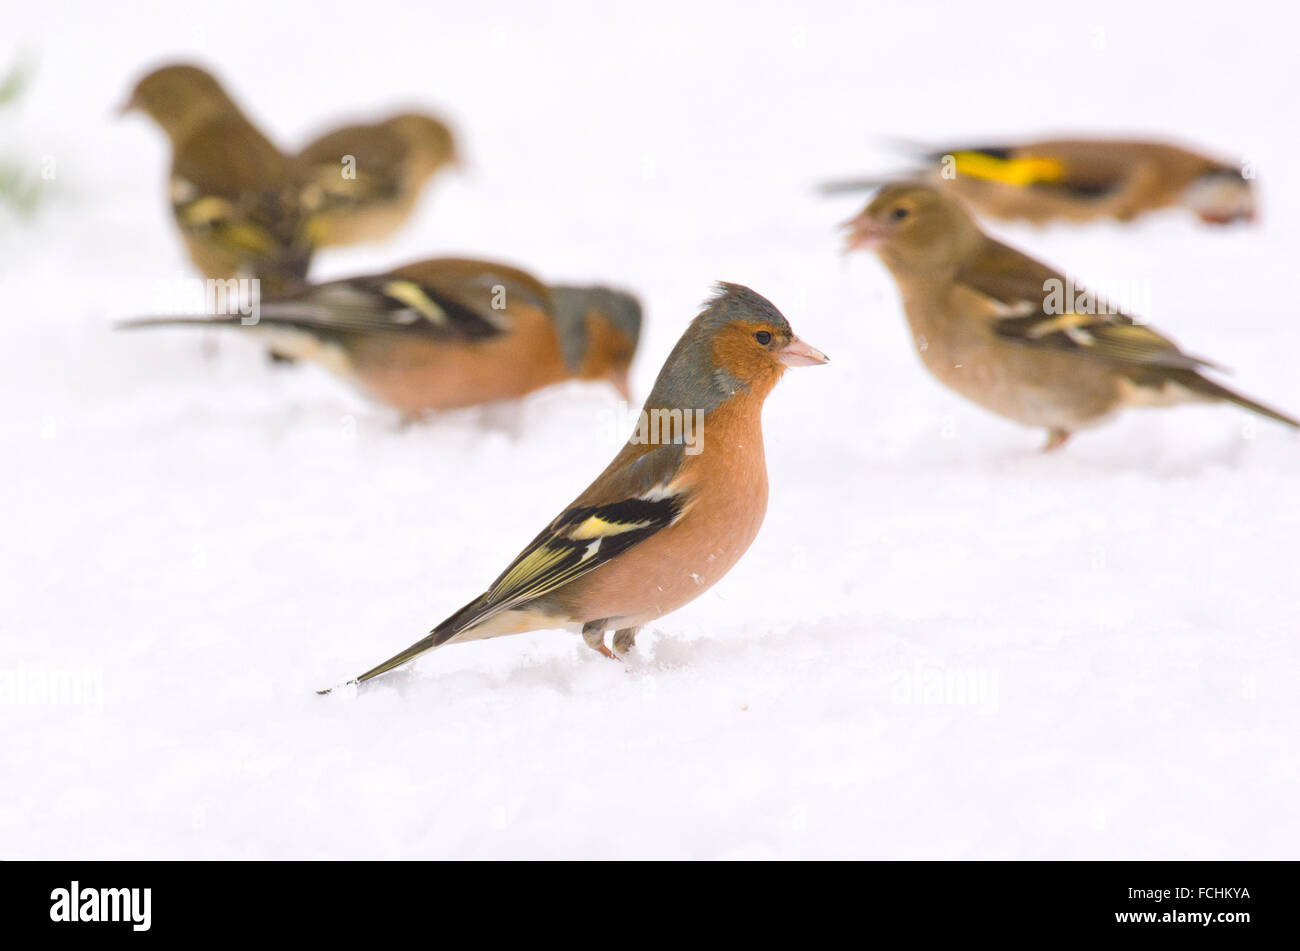 Finches foraging - Stock Image